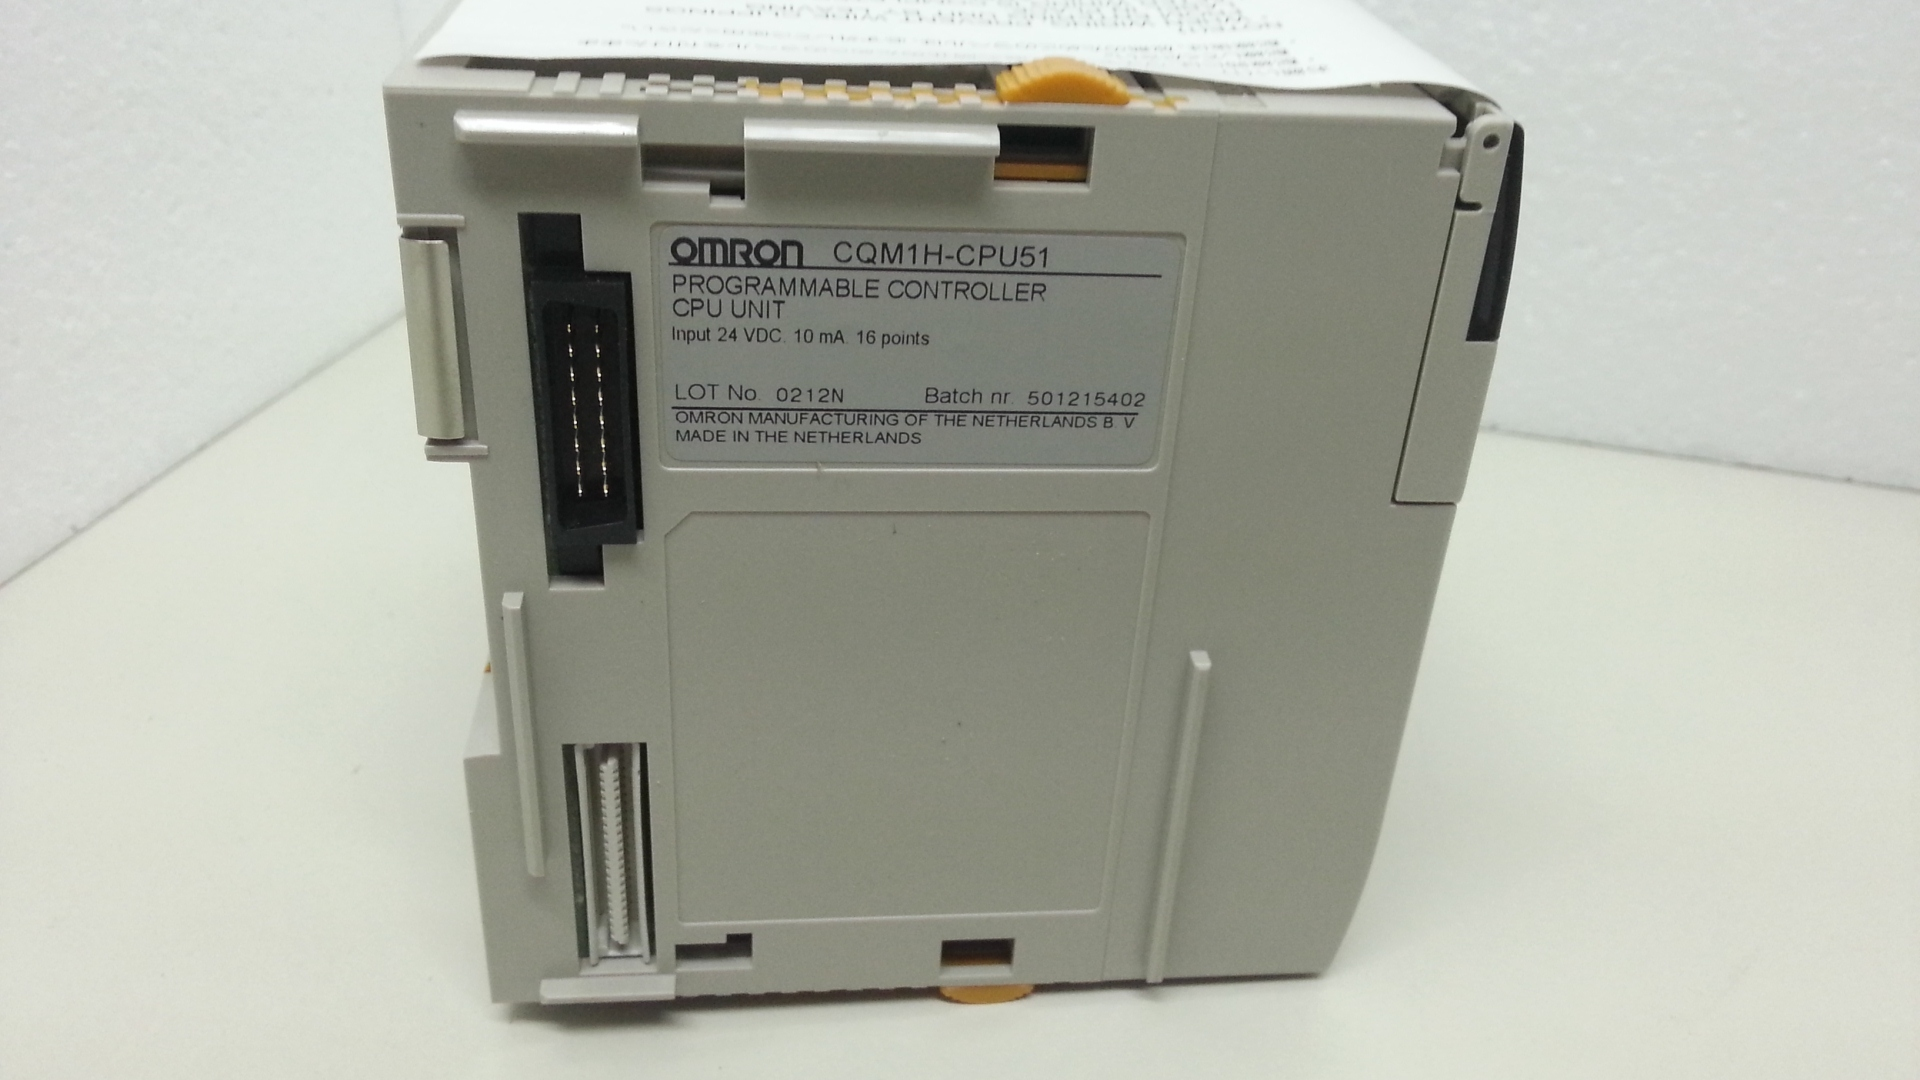 CQM1H-CPU51 Omron cpu unit new